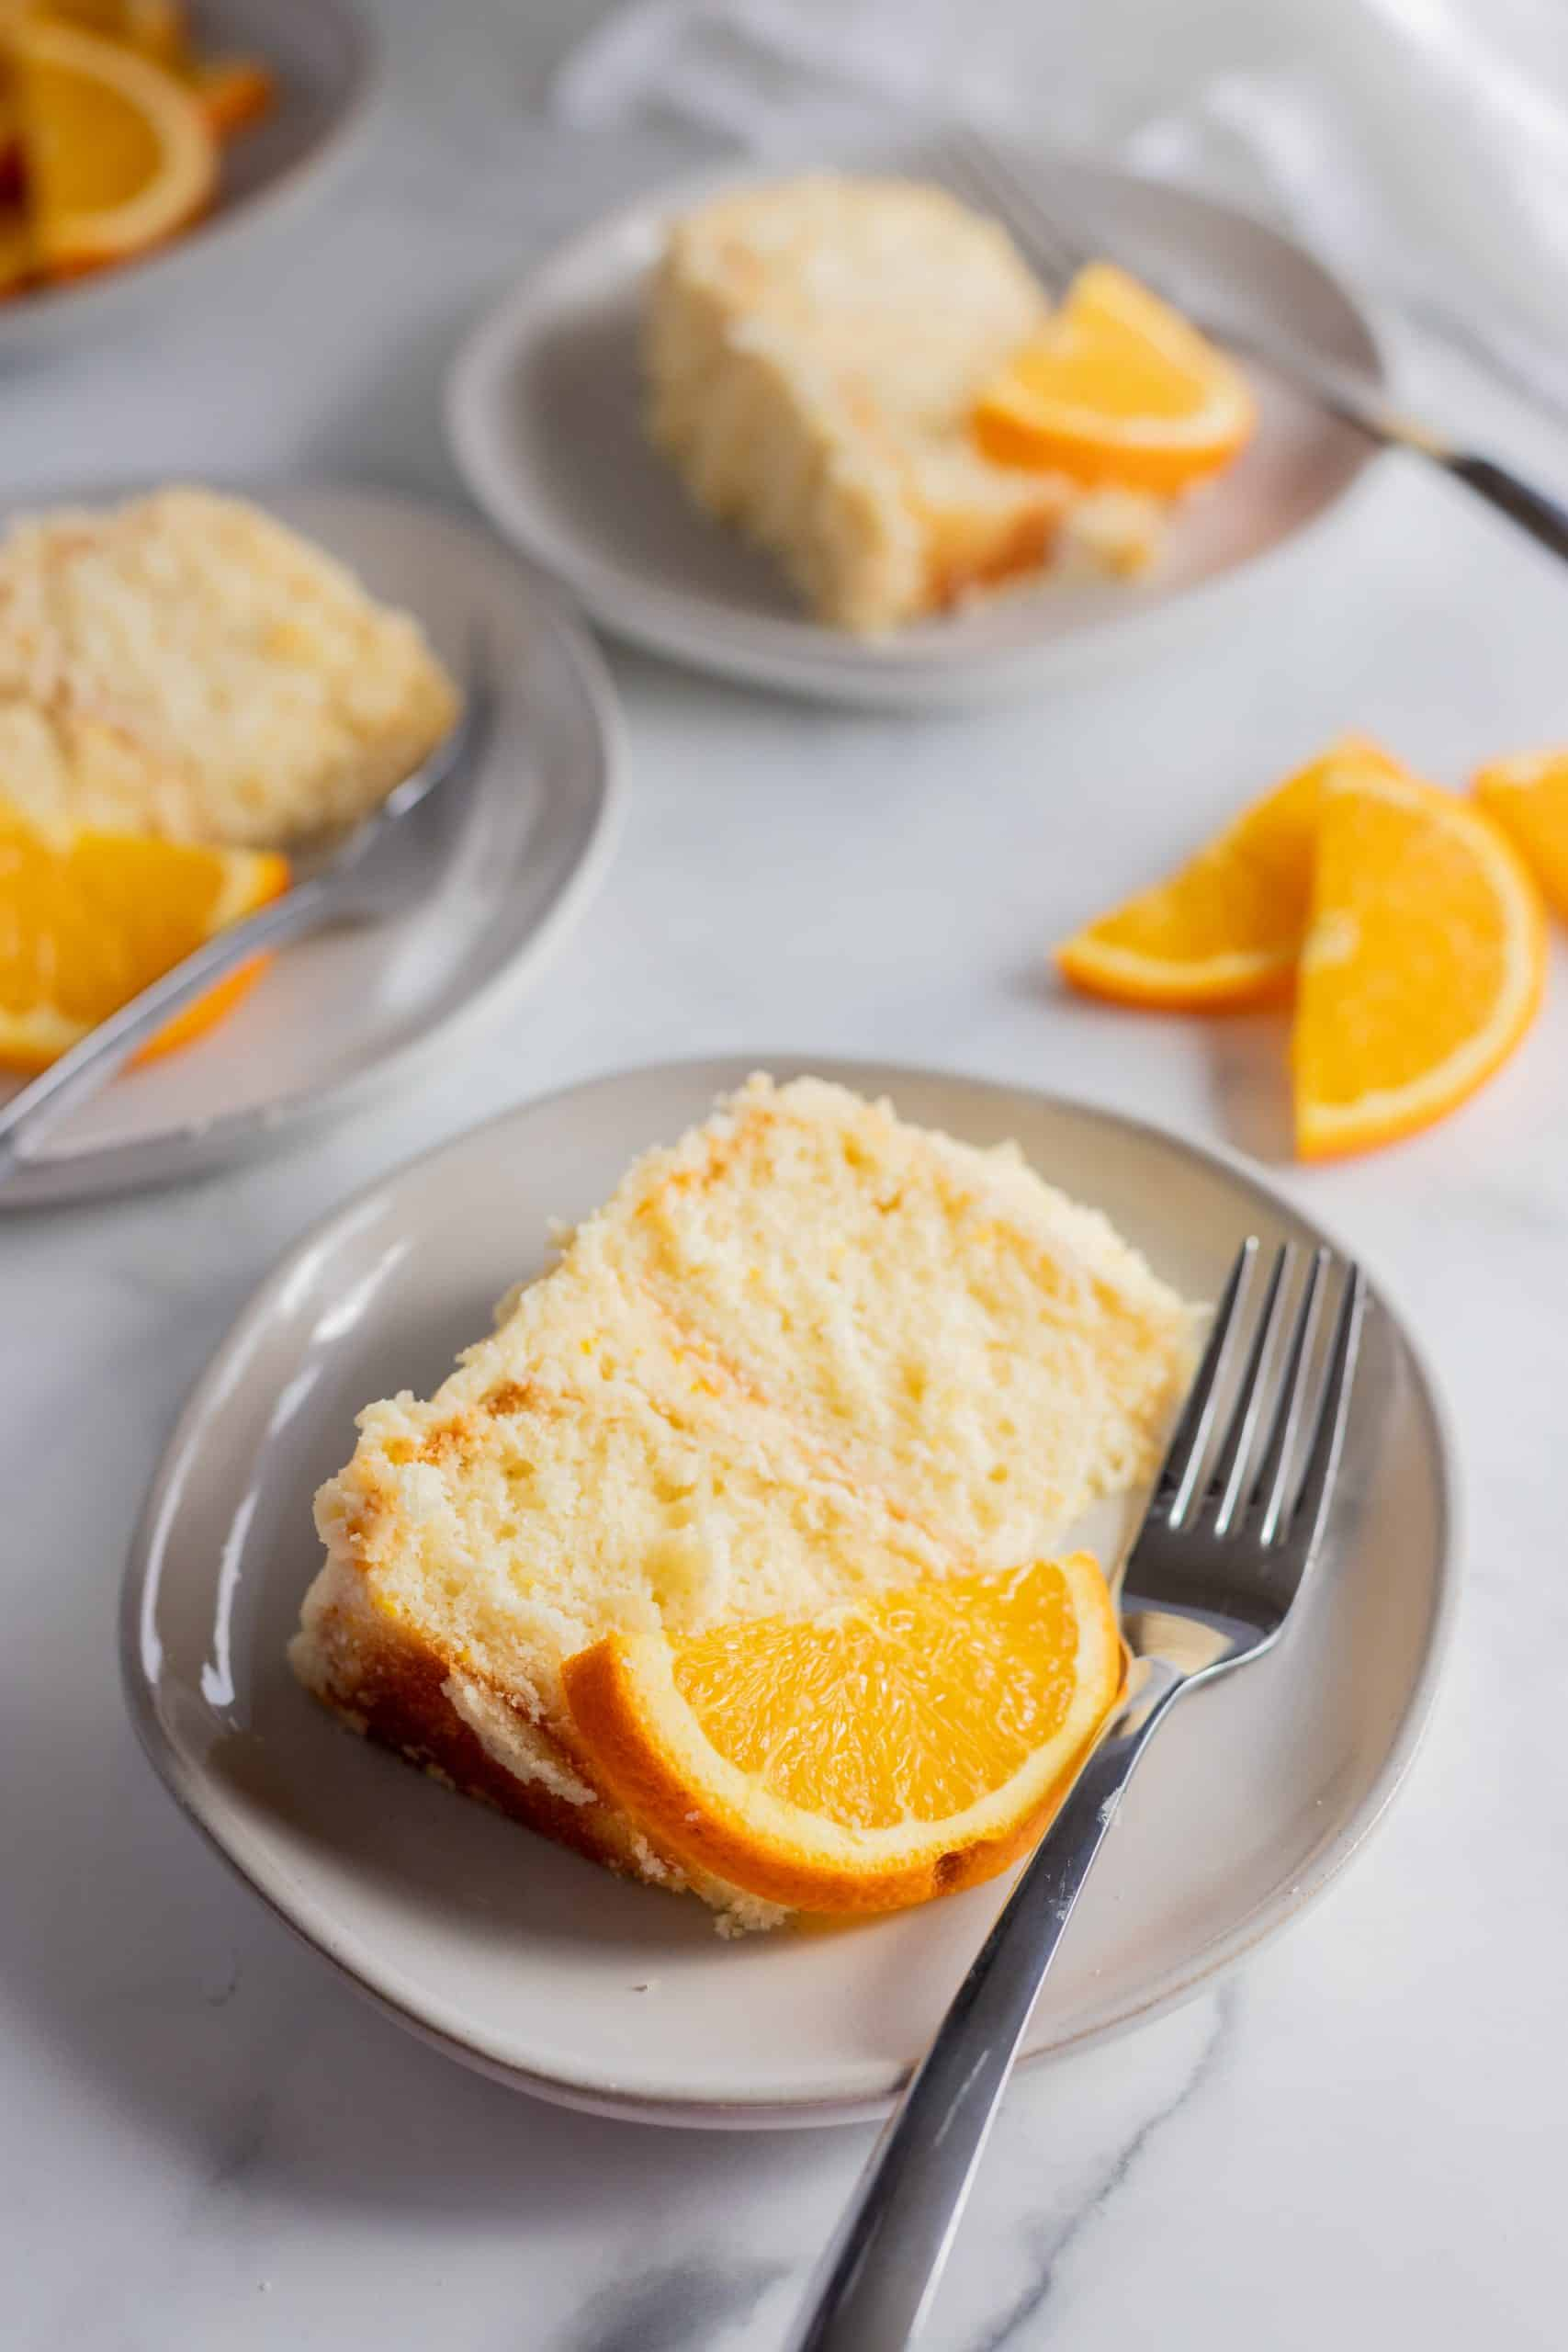 three slices of orange creamsicle cake on plates with orange slices